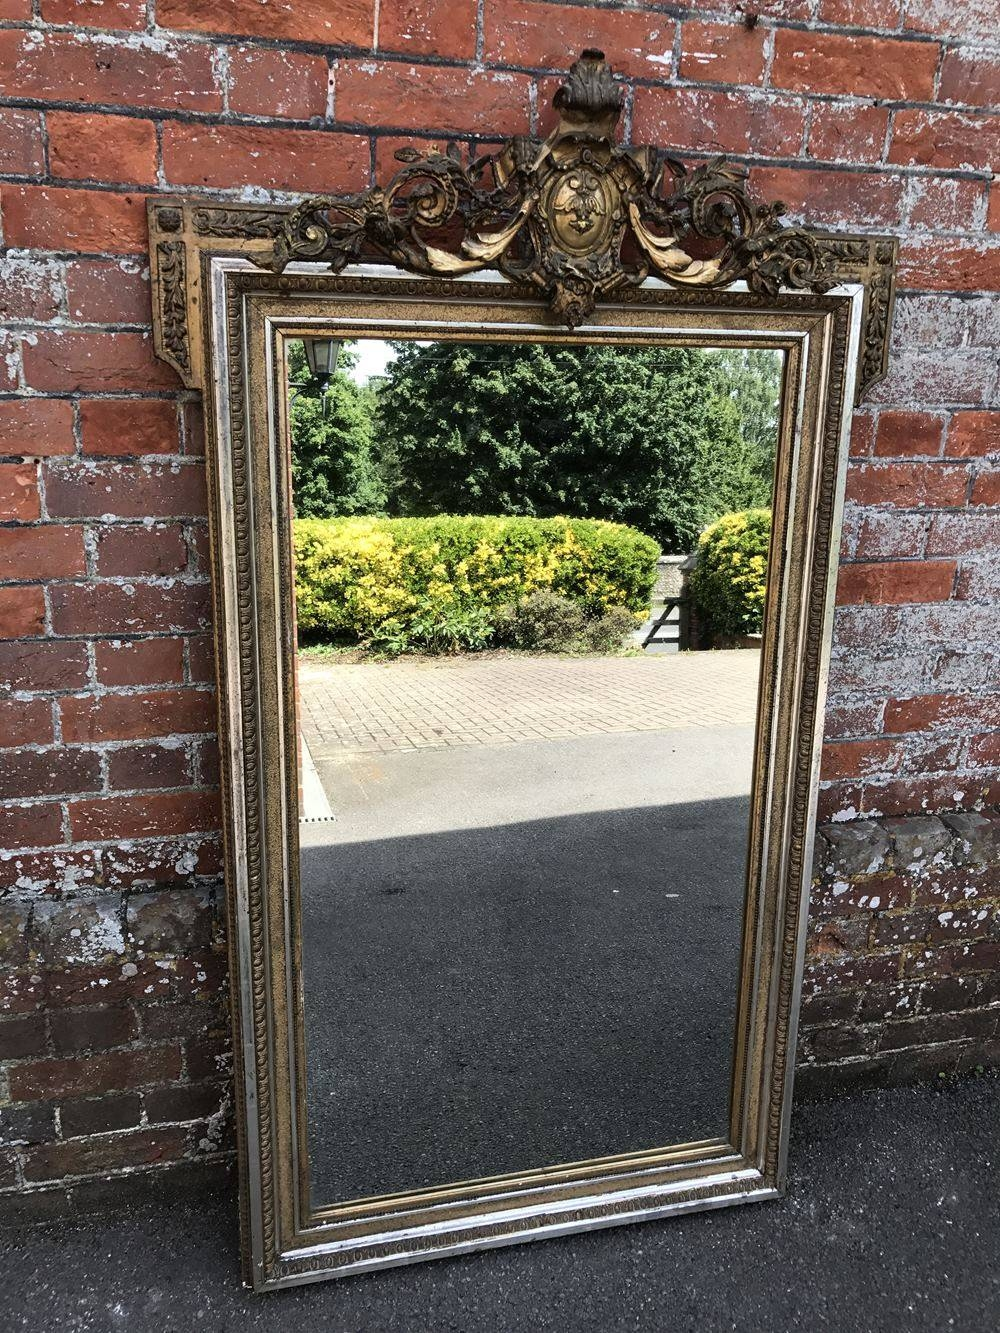 A Stunning Large Antique 19Th Century French Carved Wood And Gesso pertaining to Large Silver Gilt Mirrors (Image 2 of 15)